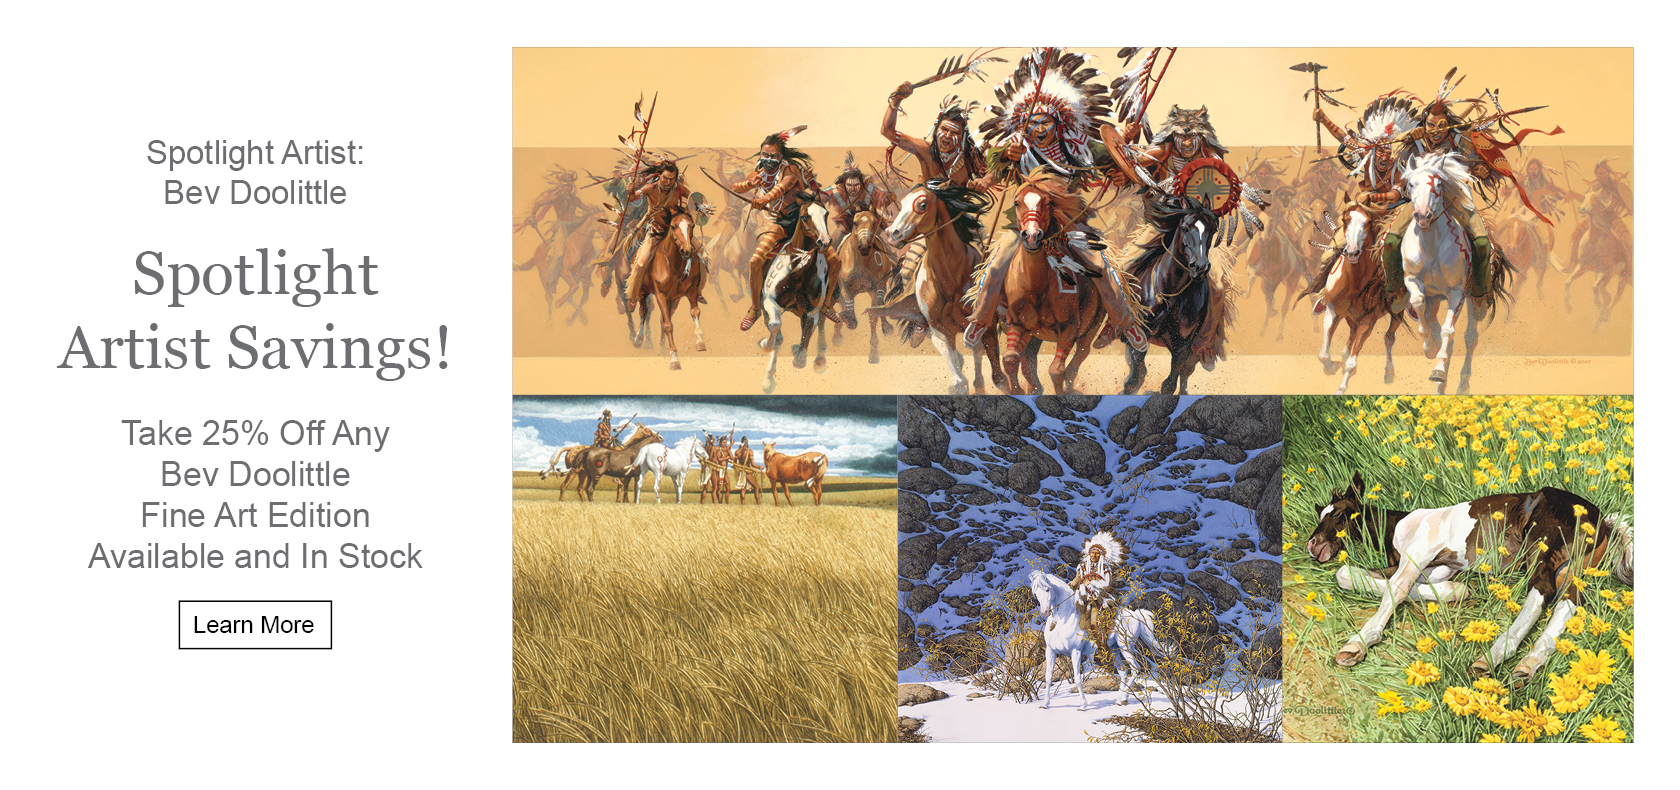 Spotlight Artist Bev Doolittle